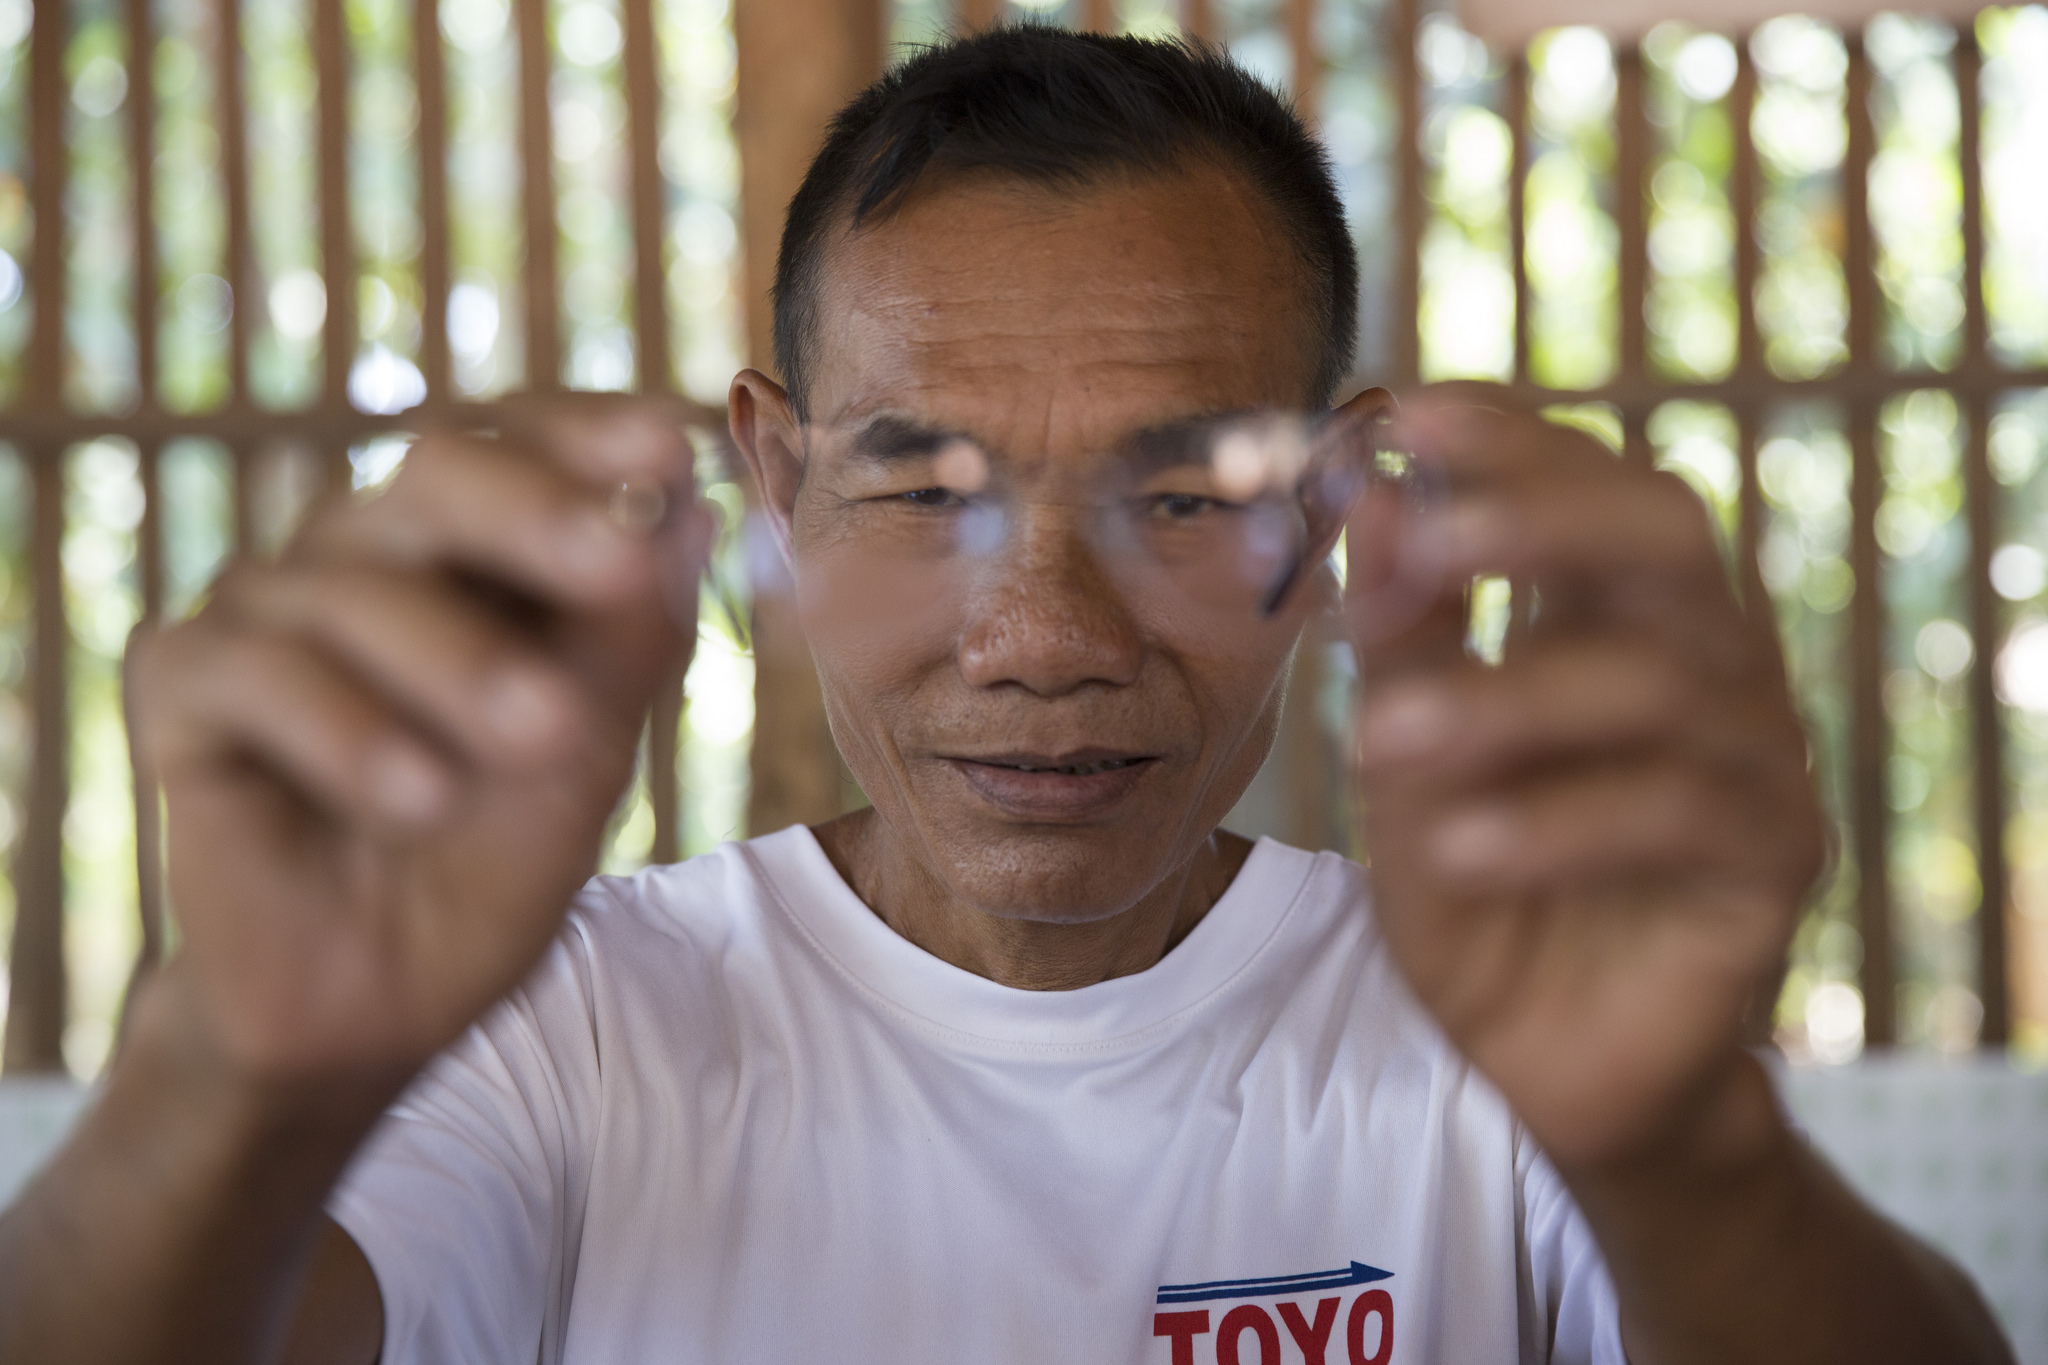 U Mg Tay was provided glasses in Myanmar and is able to read again (c) Hereward Holland/Age International